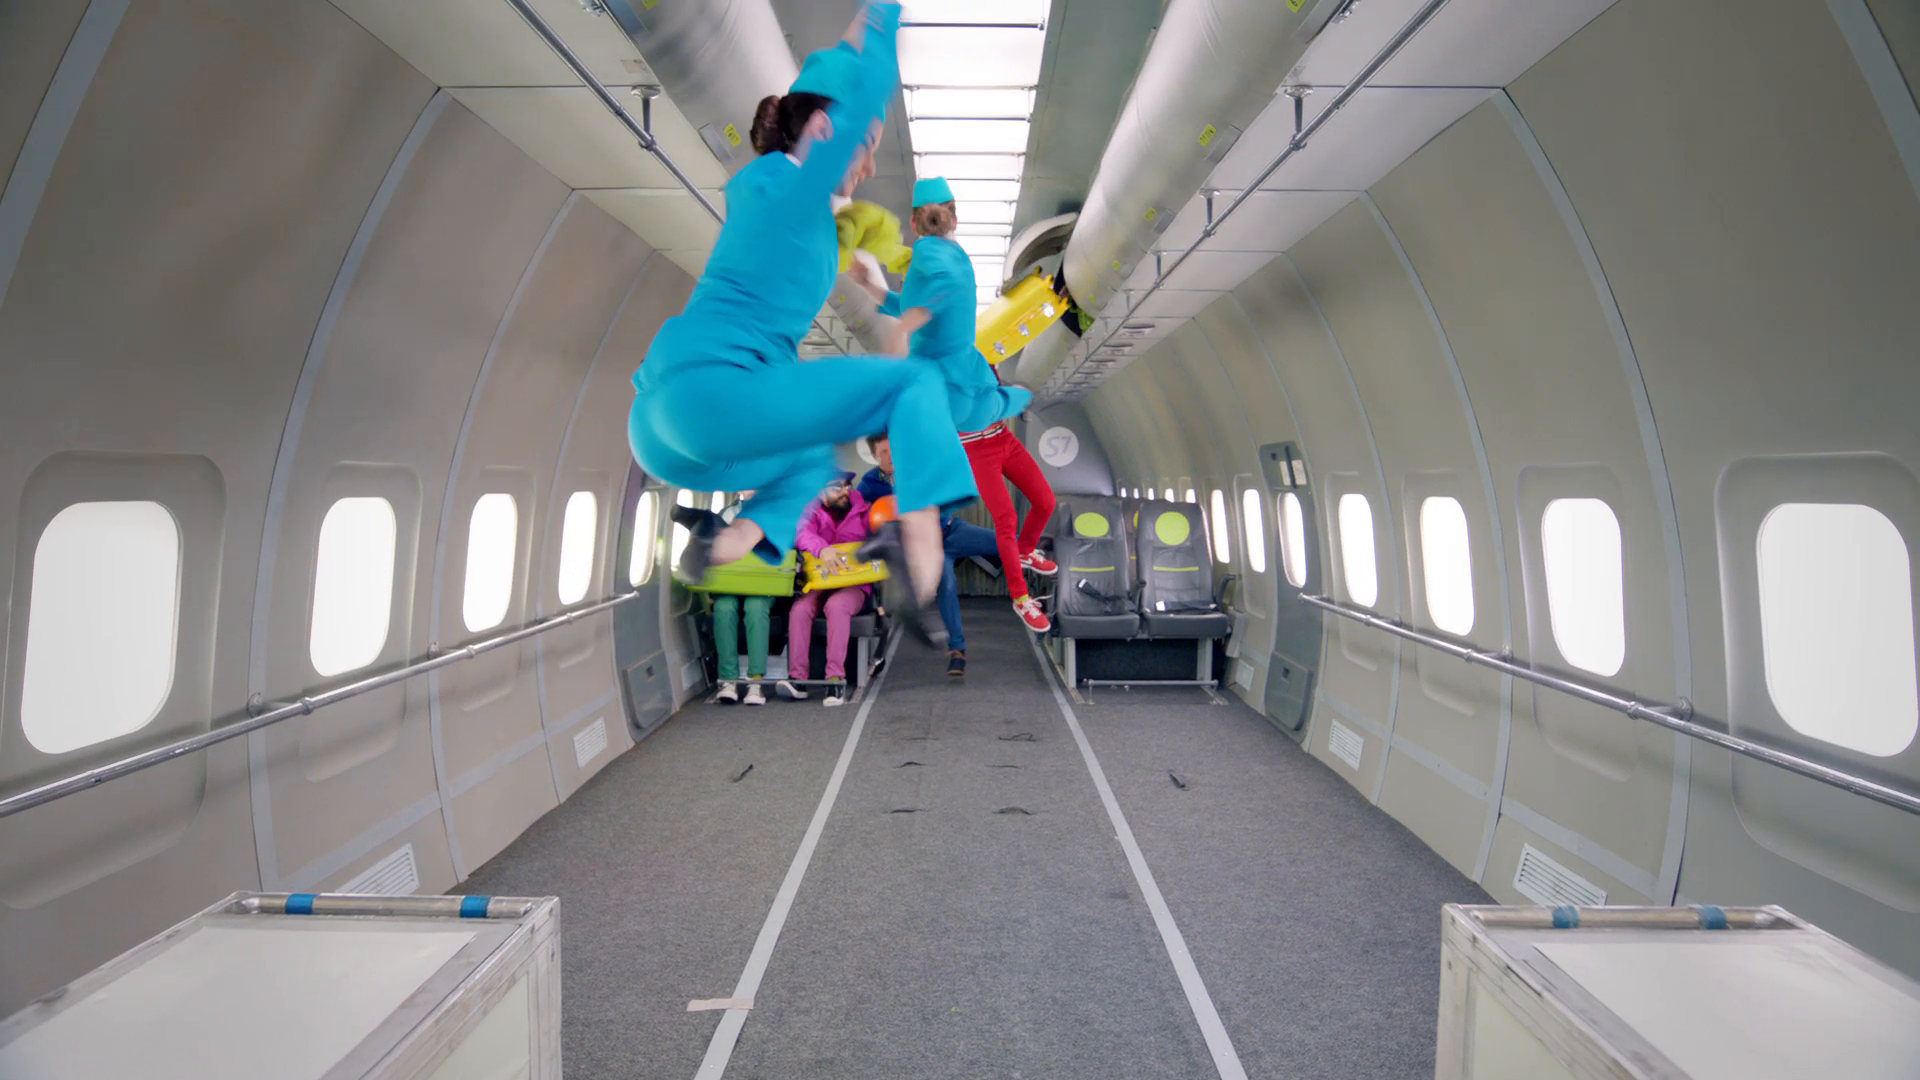 Thumbnail for OK GO — Upside Down & Inside Out #GravitysJustAHabit